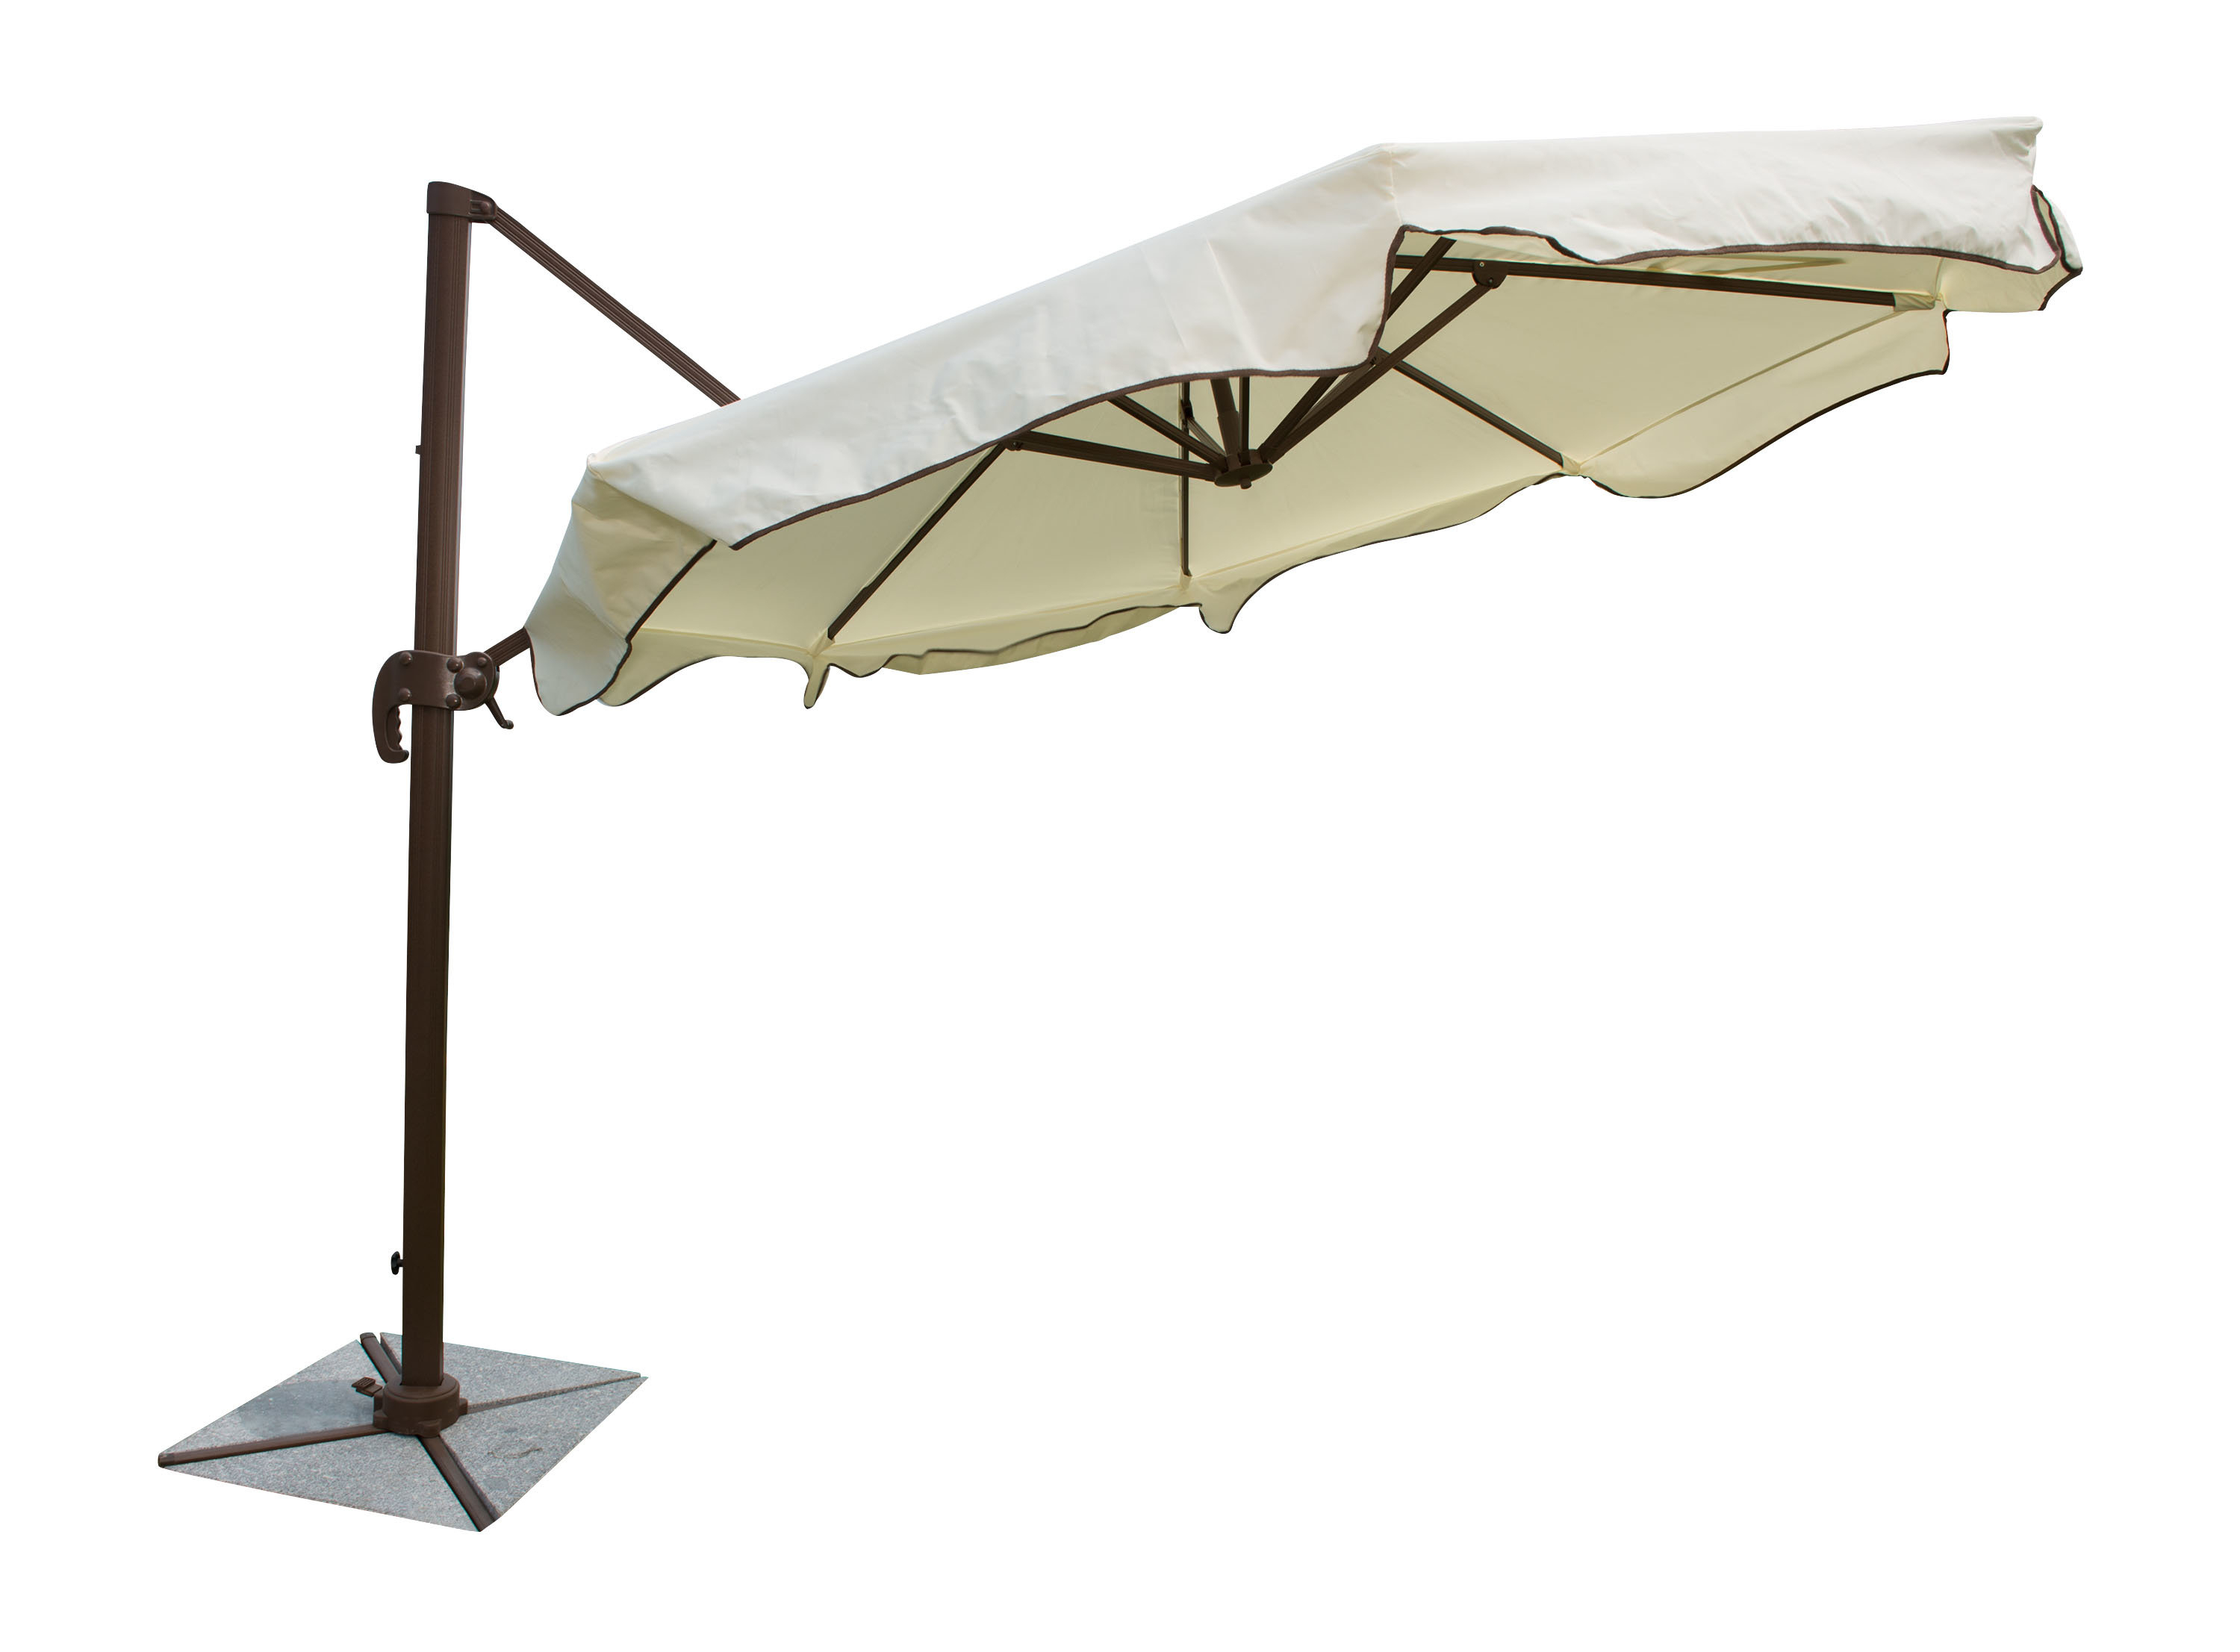 Widely Used Island Breeze 10' Cantilever Umbrella Throughout Voss Cantilever Sunbrella Umbrellas (View 11 of 20)